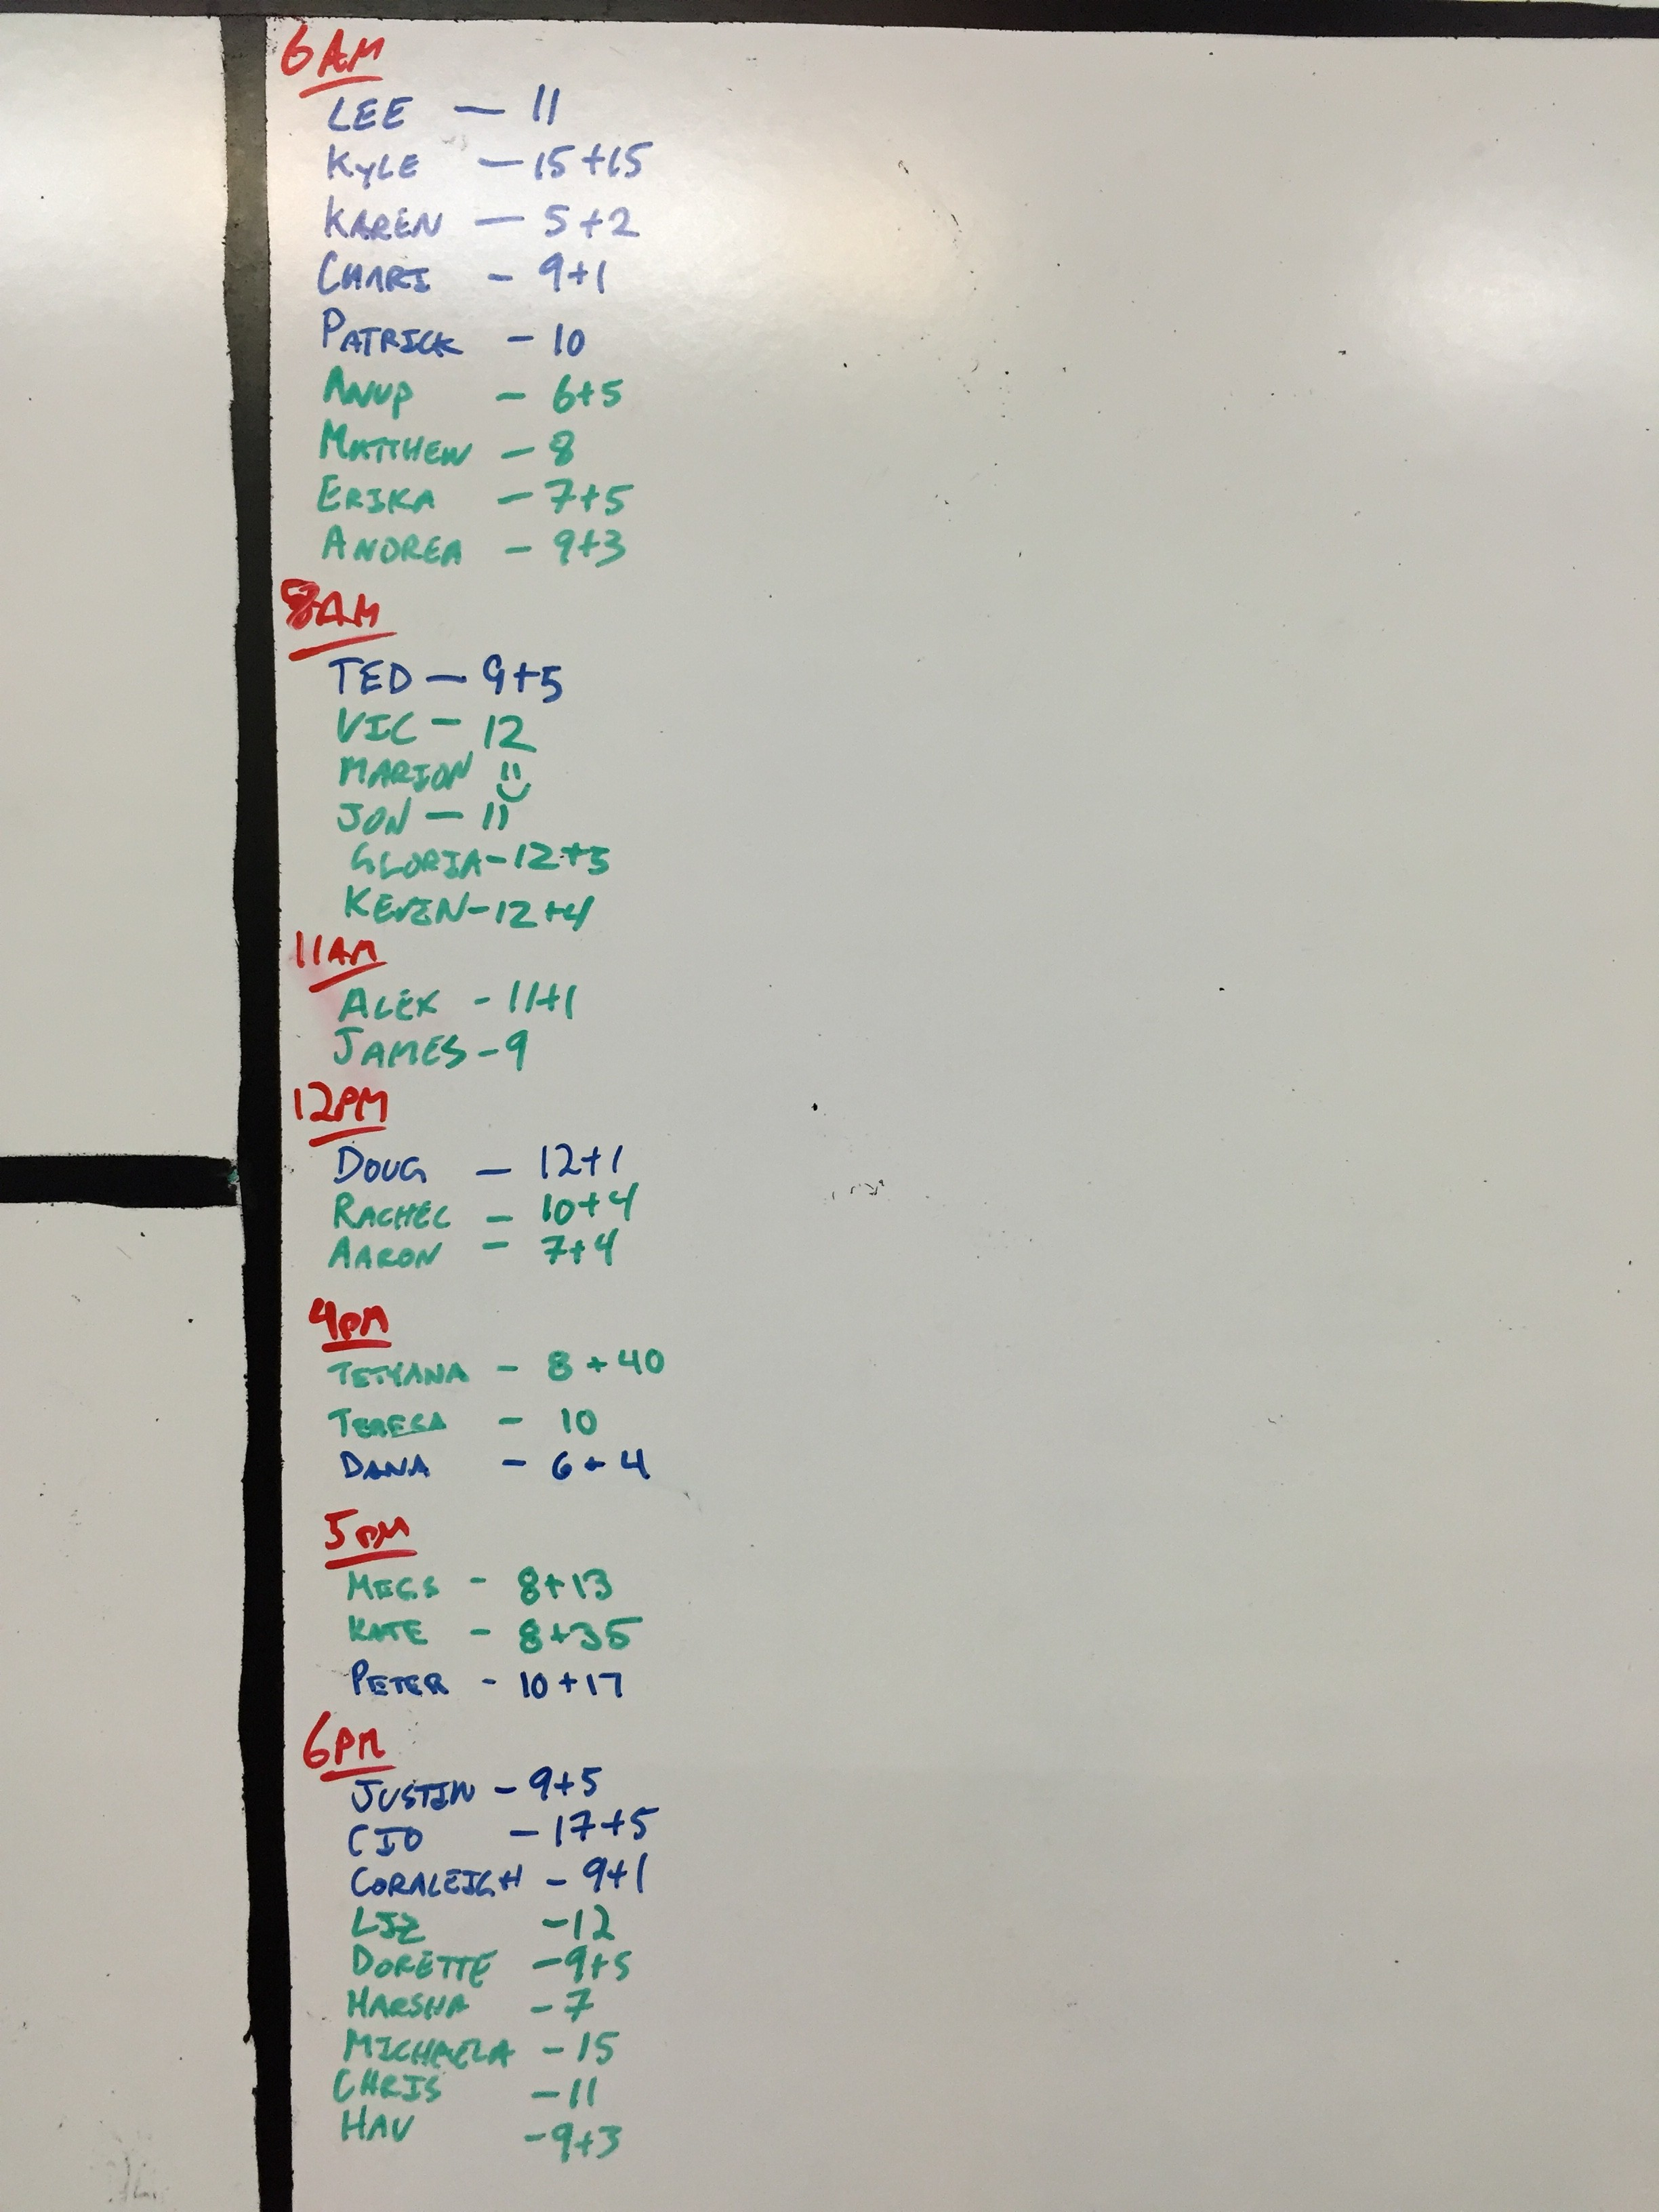 Oct 9 WOD Results